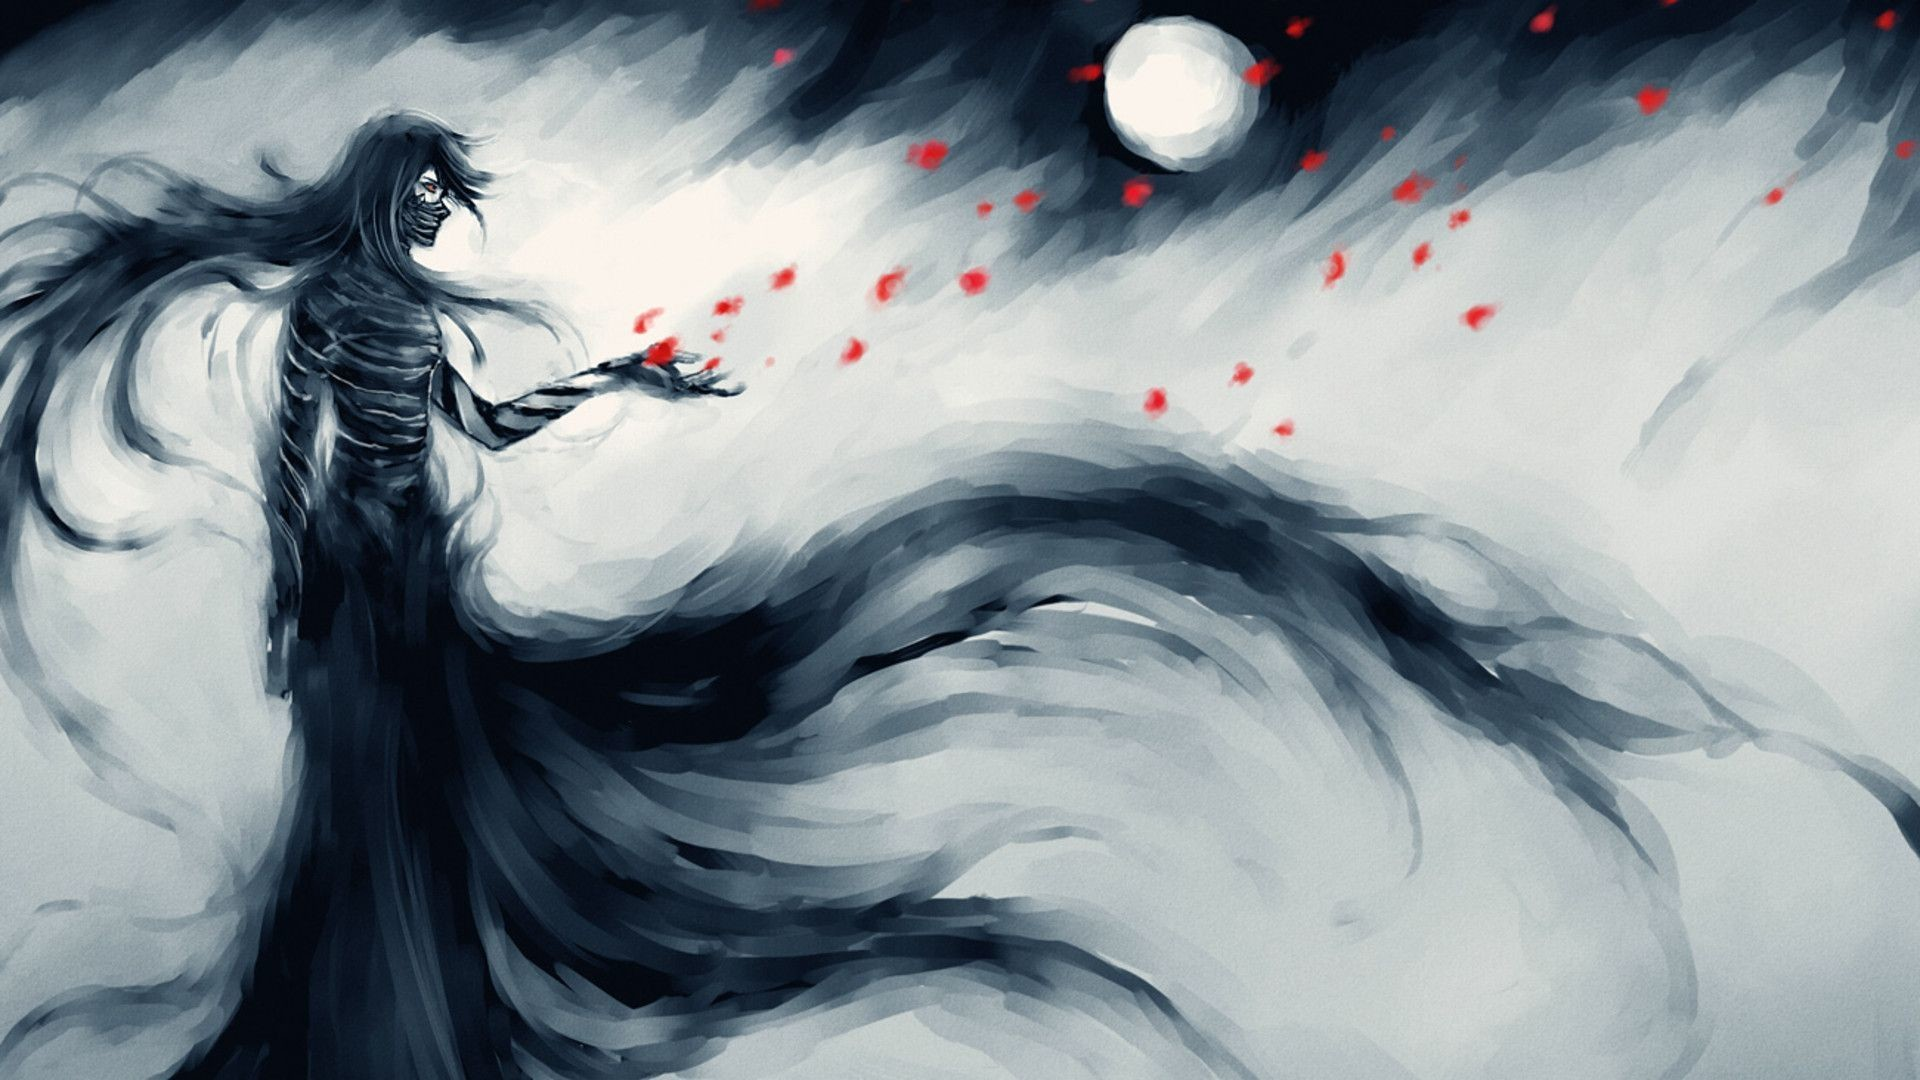 1920x1080 Awesome Bleach HD Backgrounds – Bleach HD Wallpapers for PC & Mac, Tablet,